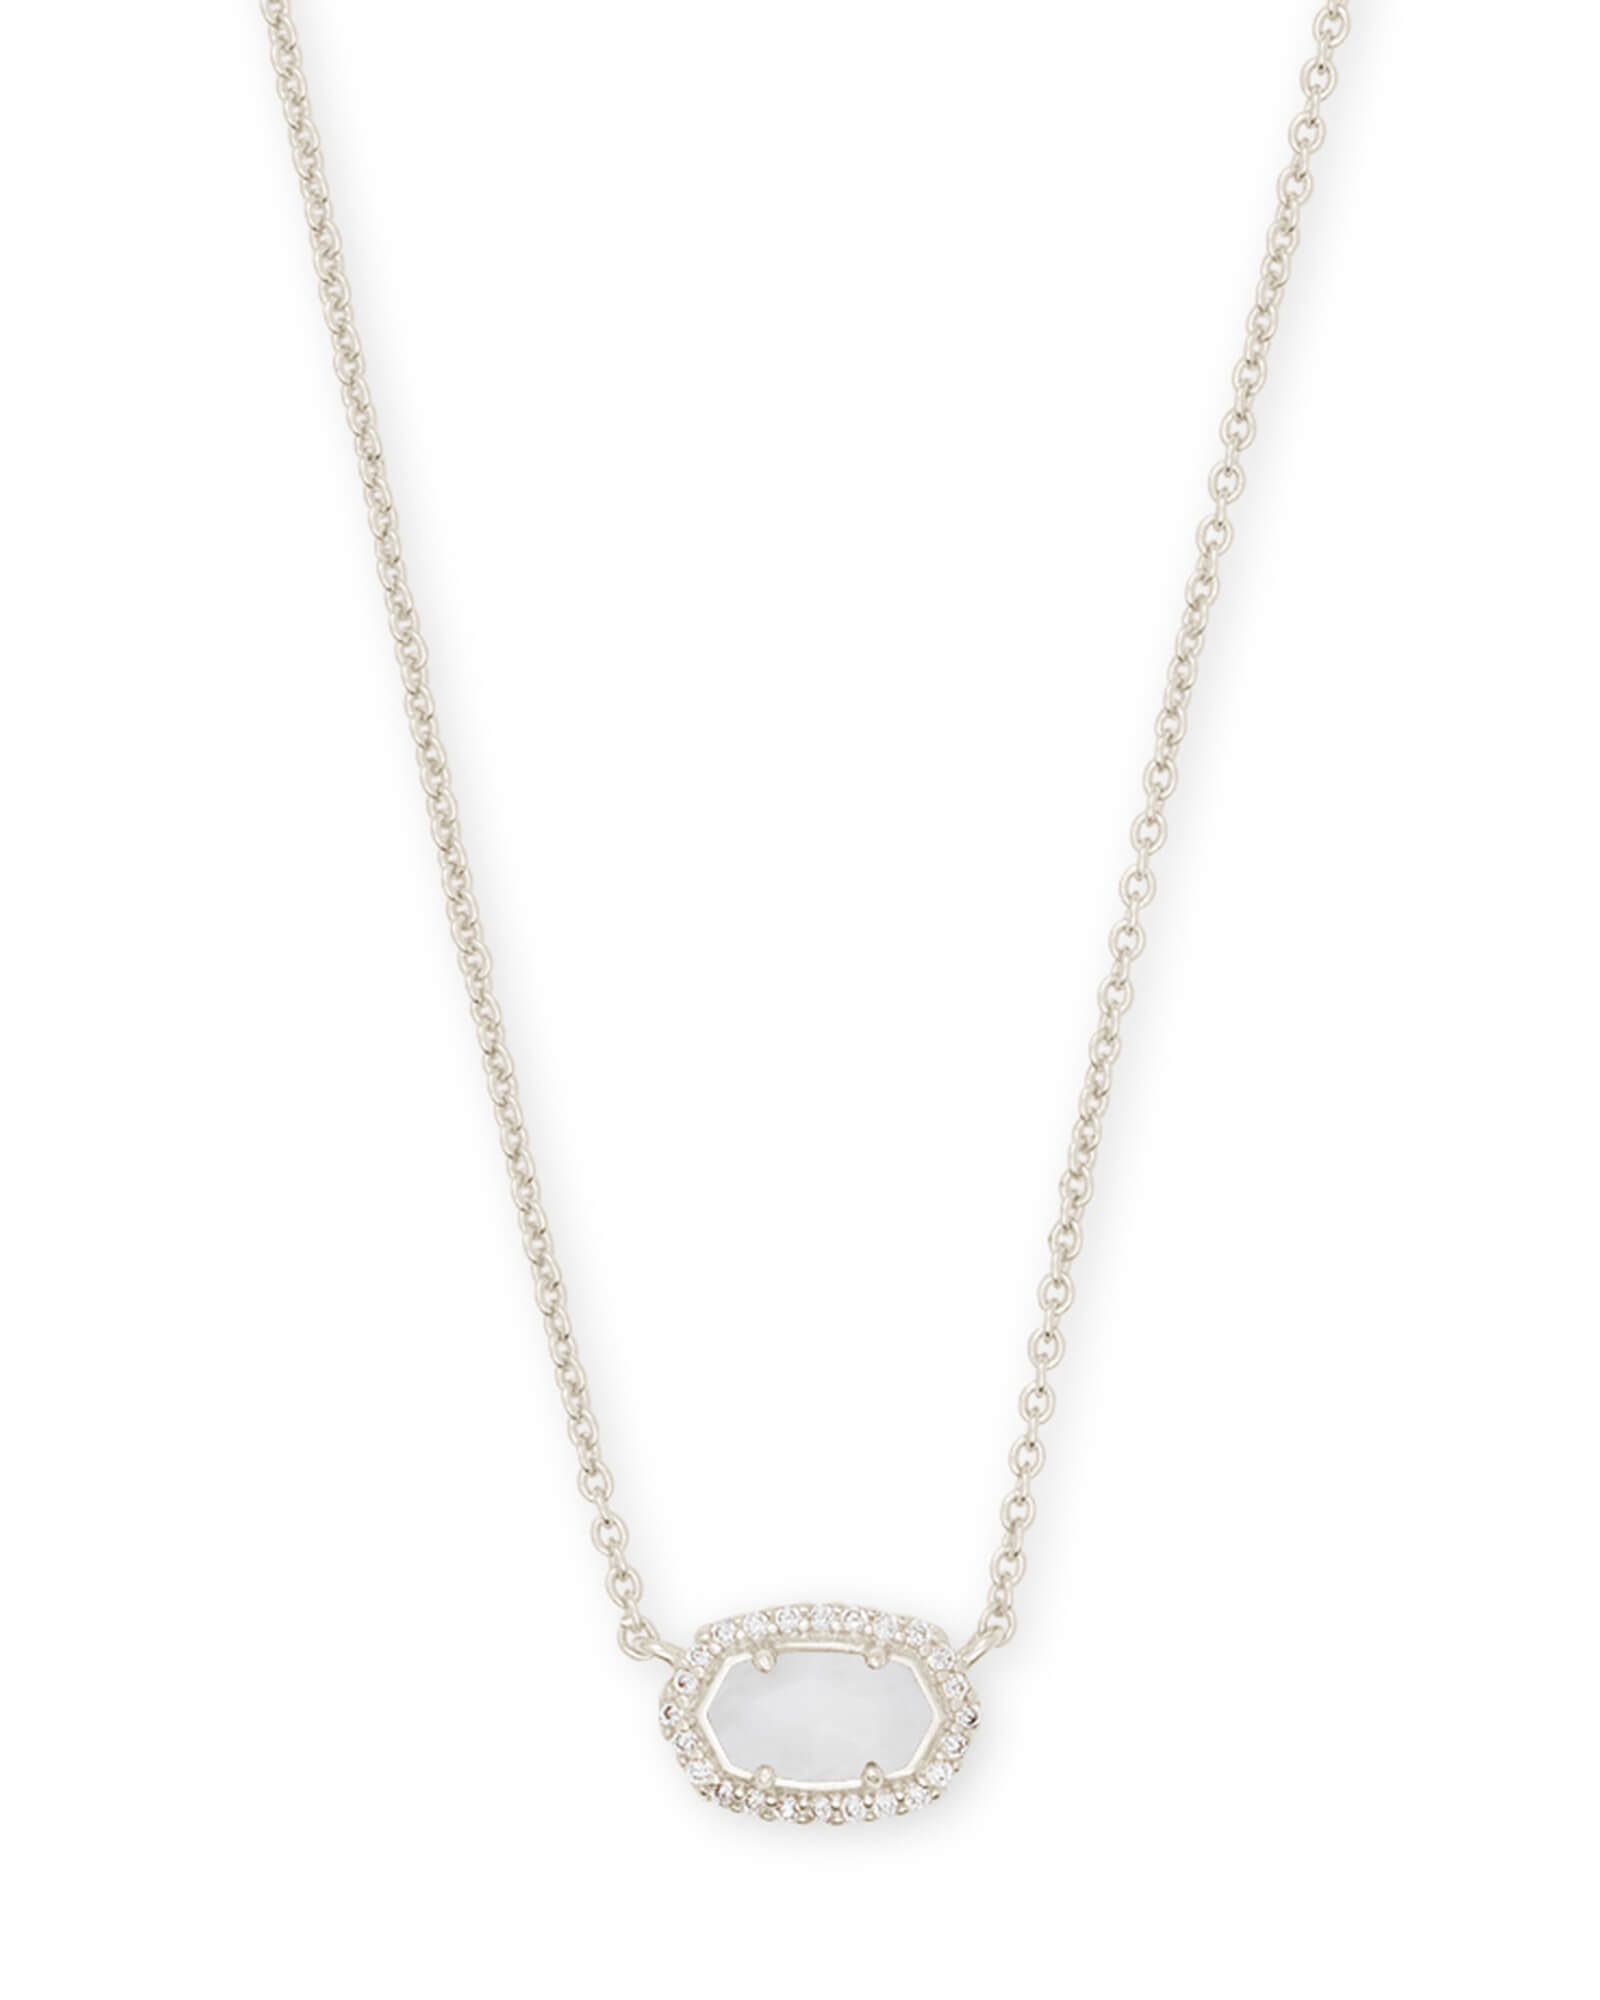 Chelsea Silver Pendant Necklace in White Pearl